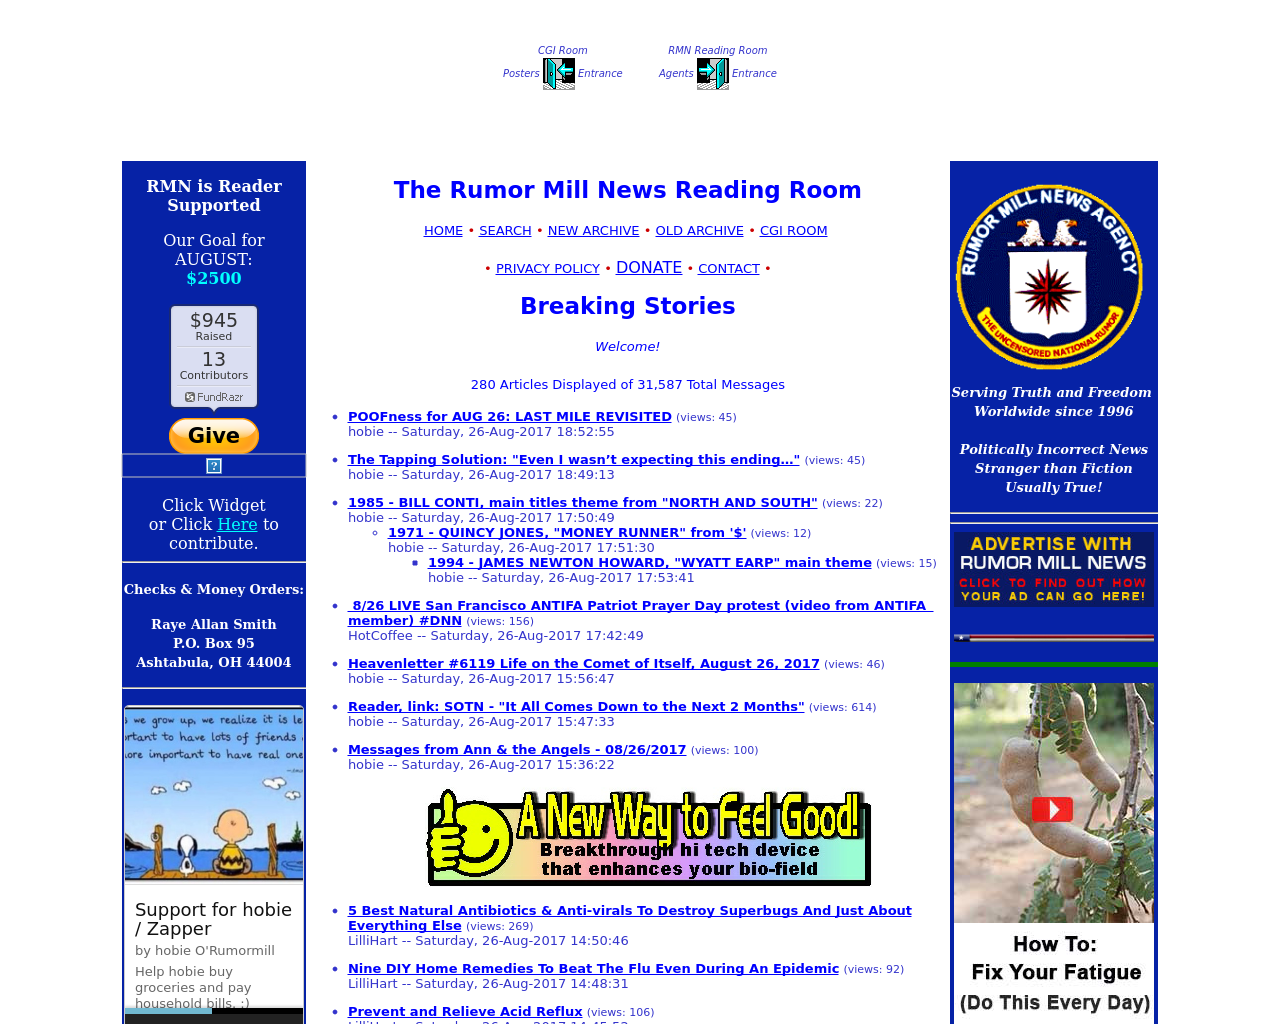 The-Rumor-Mill-News-Reading-Room-Advertising-Reviews-Pricing